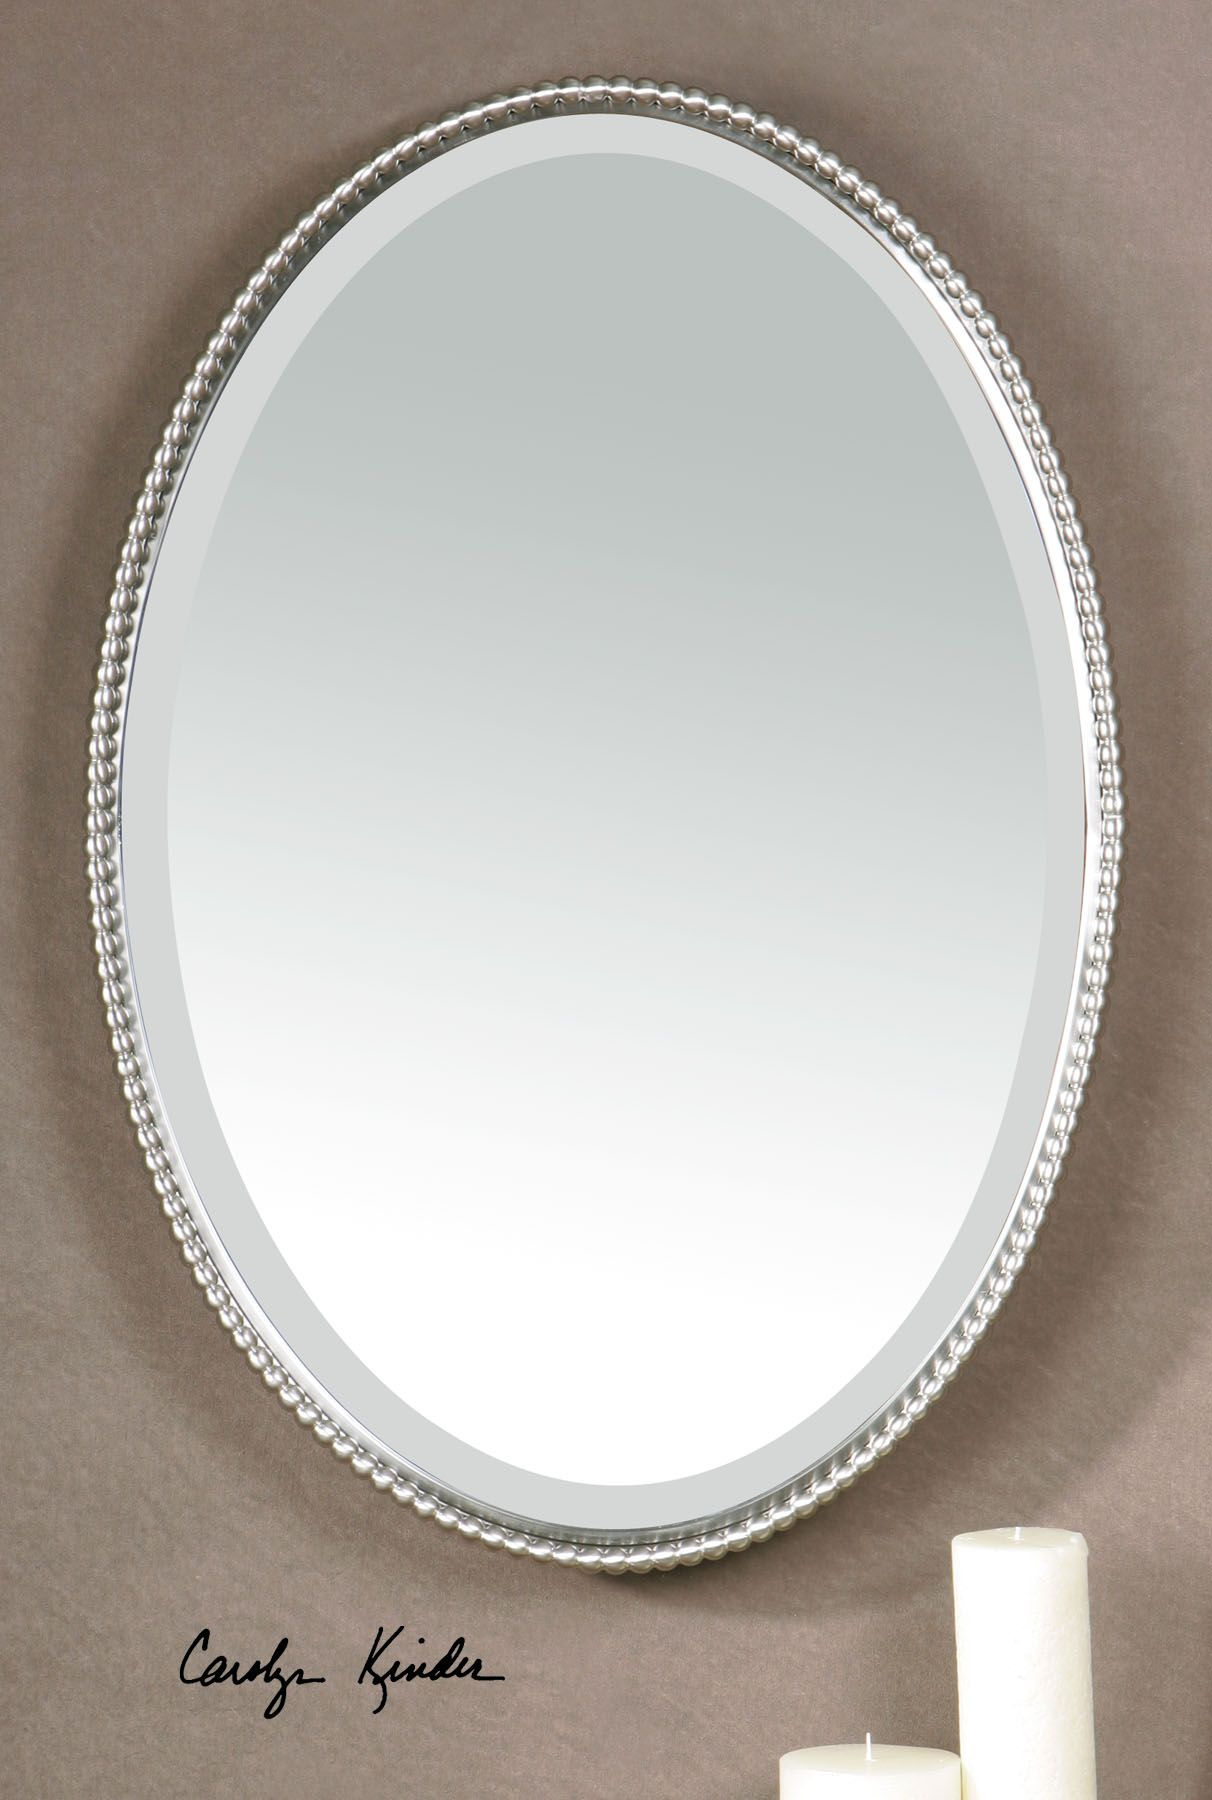 oval wall mirrors mirrors uk with stylish loree brushed nickel finish oval wall mirror furniture pinterest bathroom mirrors uk nickel finish